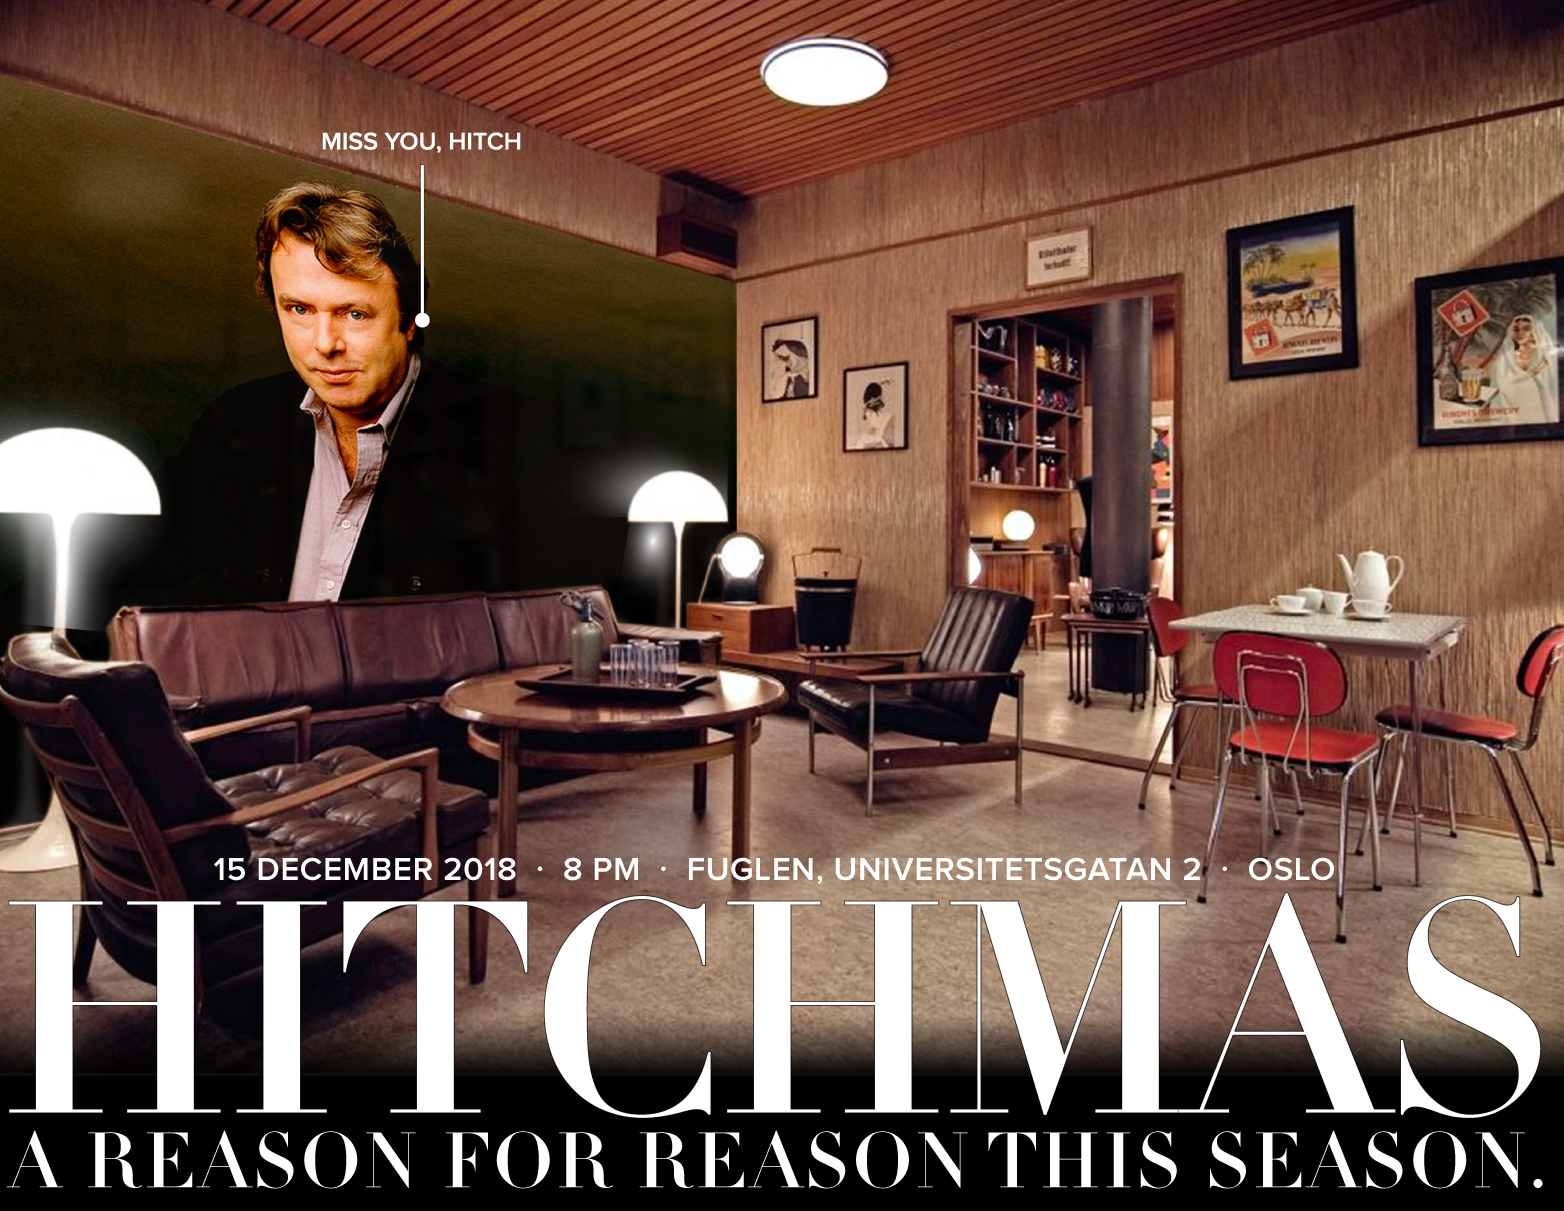 Hitchmas 2018 in Oslo - Happy Hitchmas - Celebrate Christopher Hitchens and Think for Yourself - Martin Krzywinski